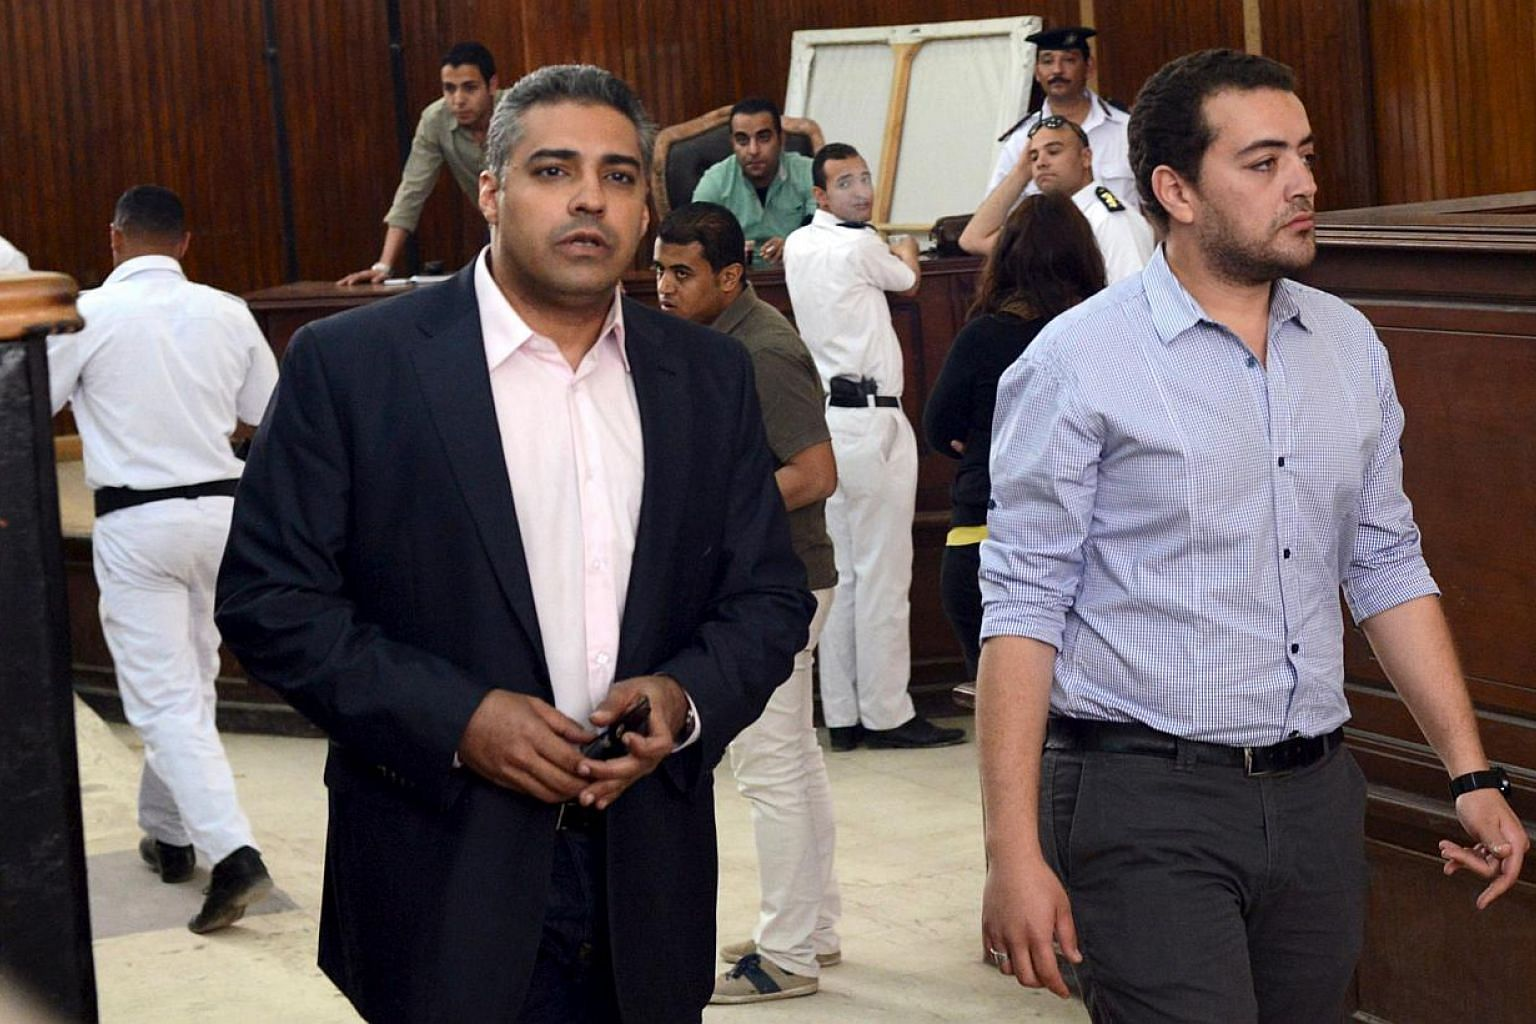 Al-Jazeera television journalists Mohamed Fahmy (left) and Baher Mohamed are seen at a court in Cairo on April 22, 2015. They are undergoing a retrial after a court found procedural flaws in the original case. -- PHOTO: REUTERS